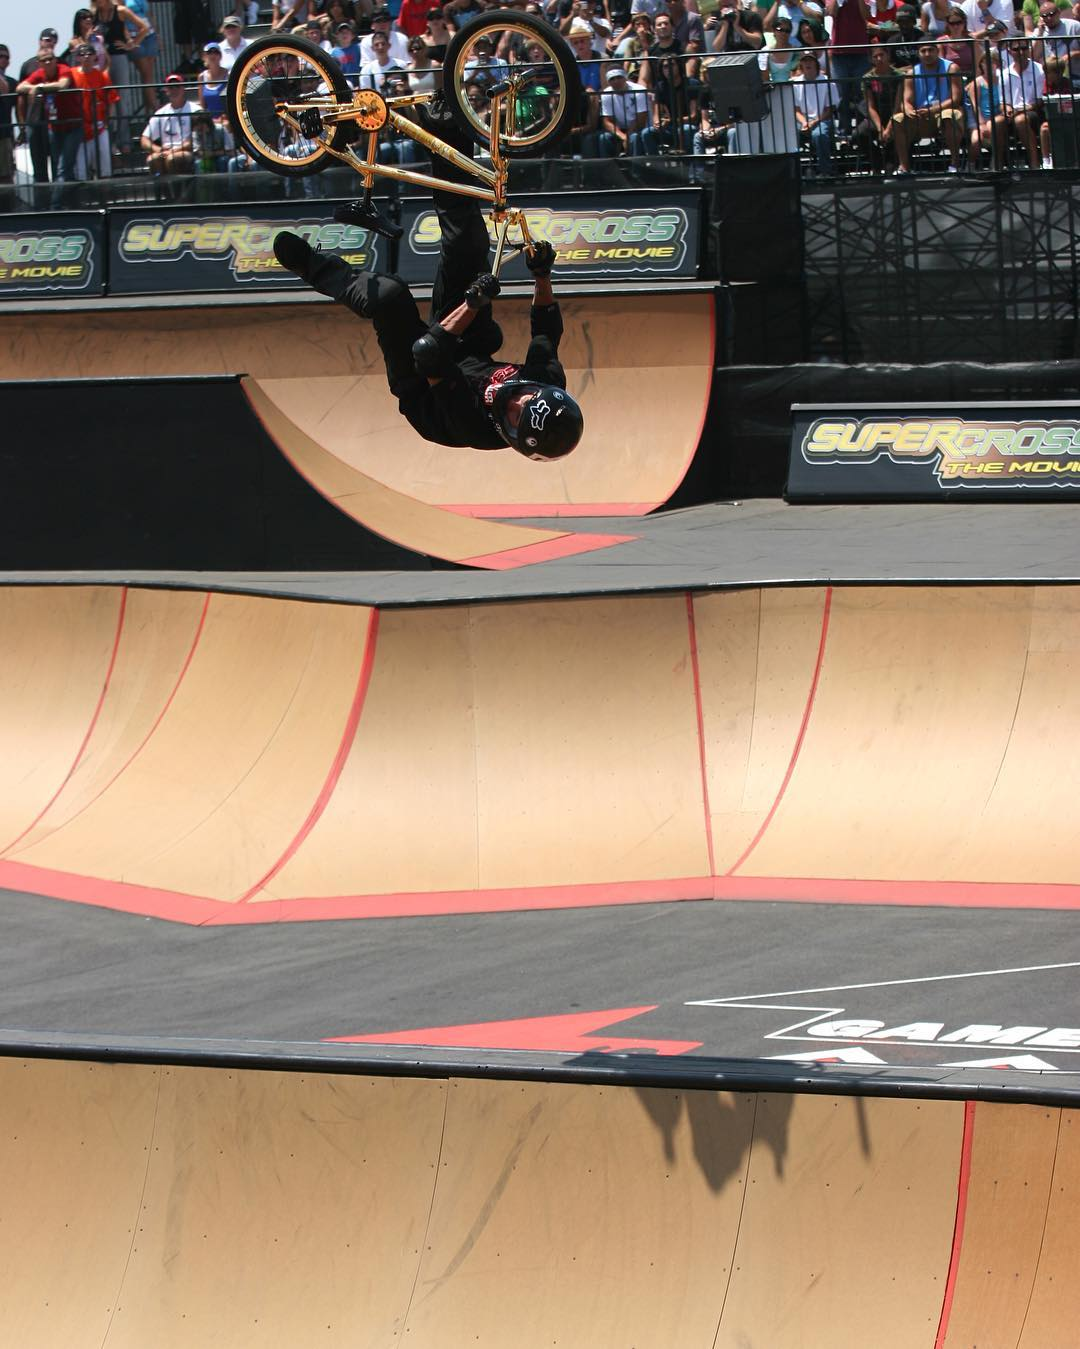 We are excited to host a BMX Park Best Trick competition that will honor the legacy of Dave Mirra at #XGames Austin on Sat., June 4!  The winner will earn a gold pedals trophy.  Click the link on our profile page for more info!